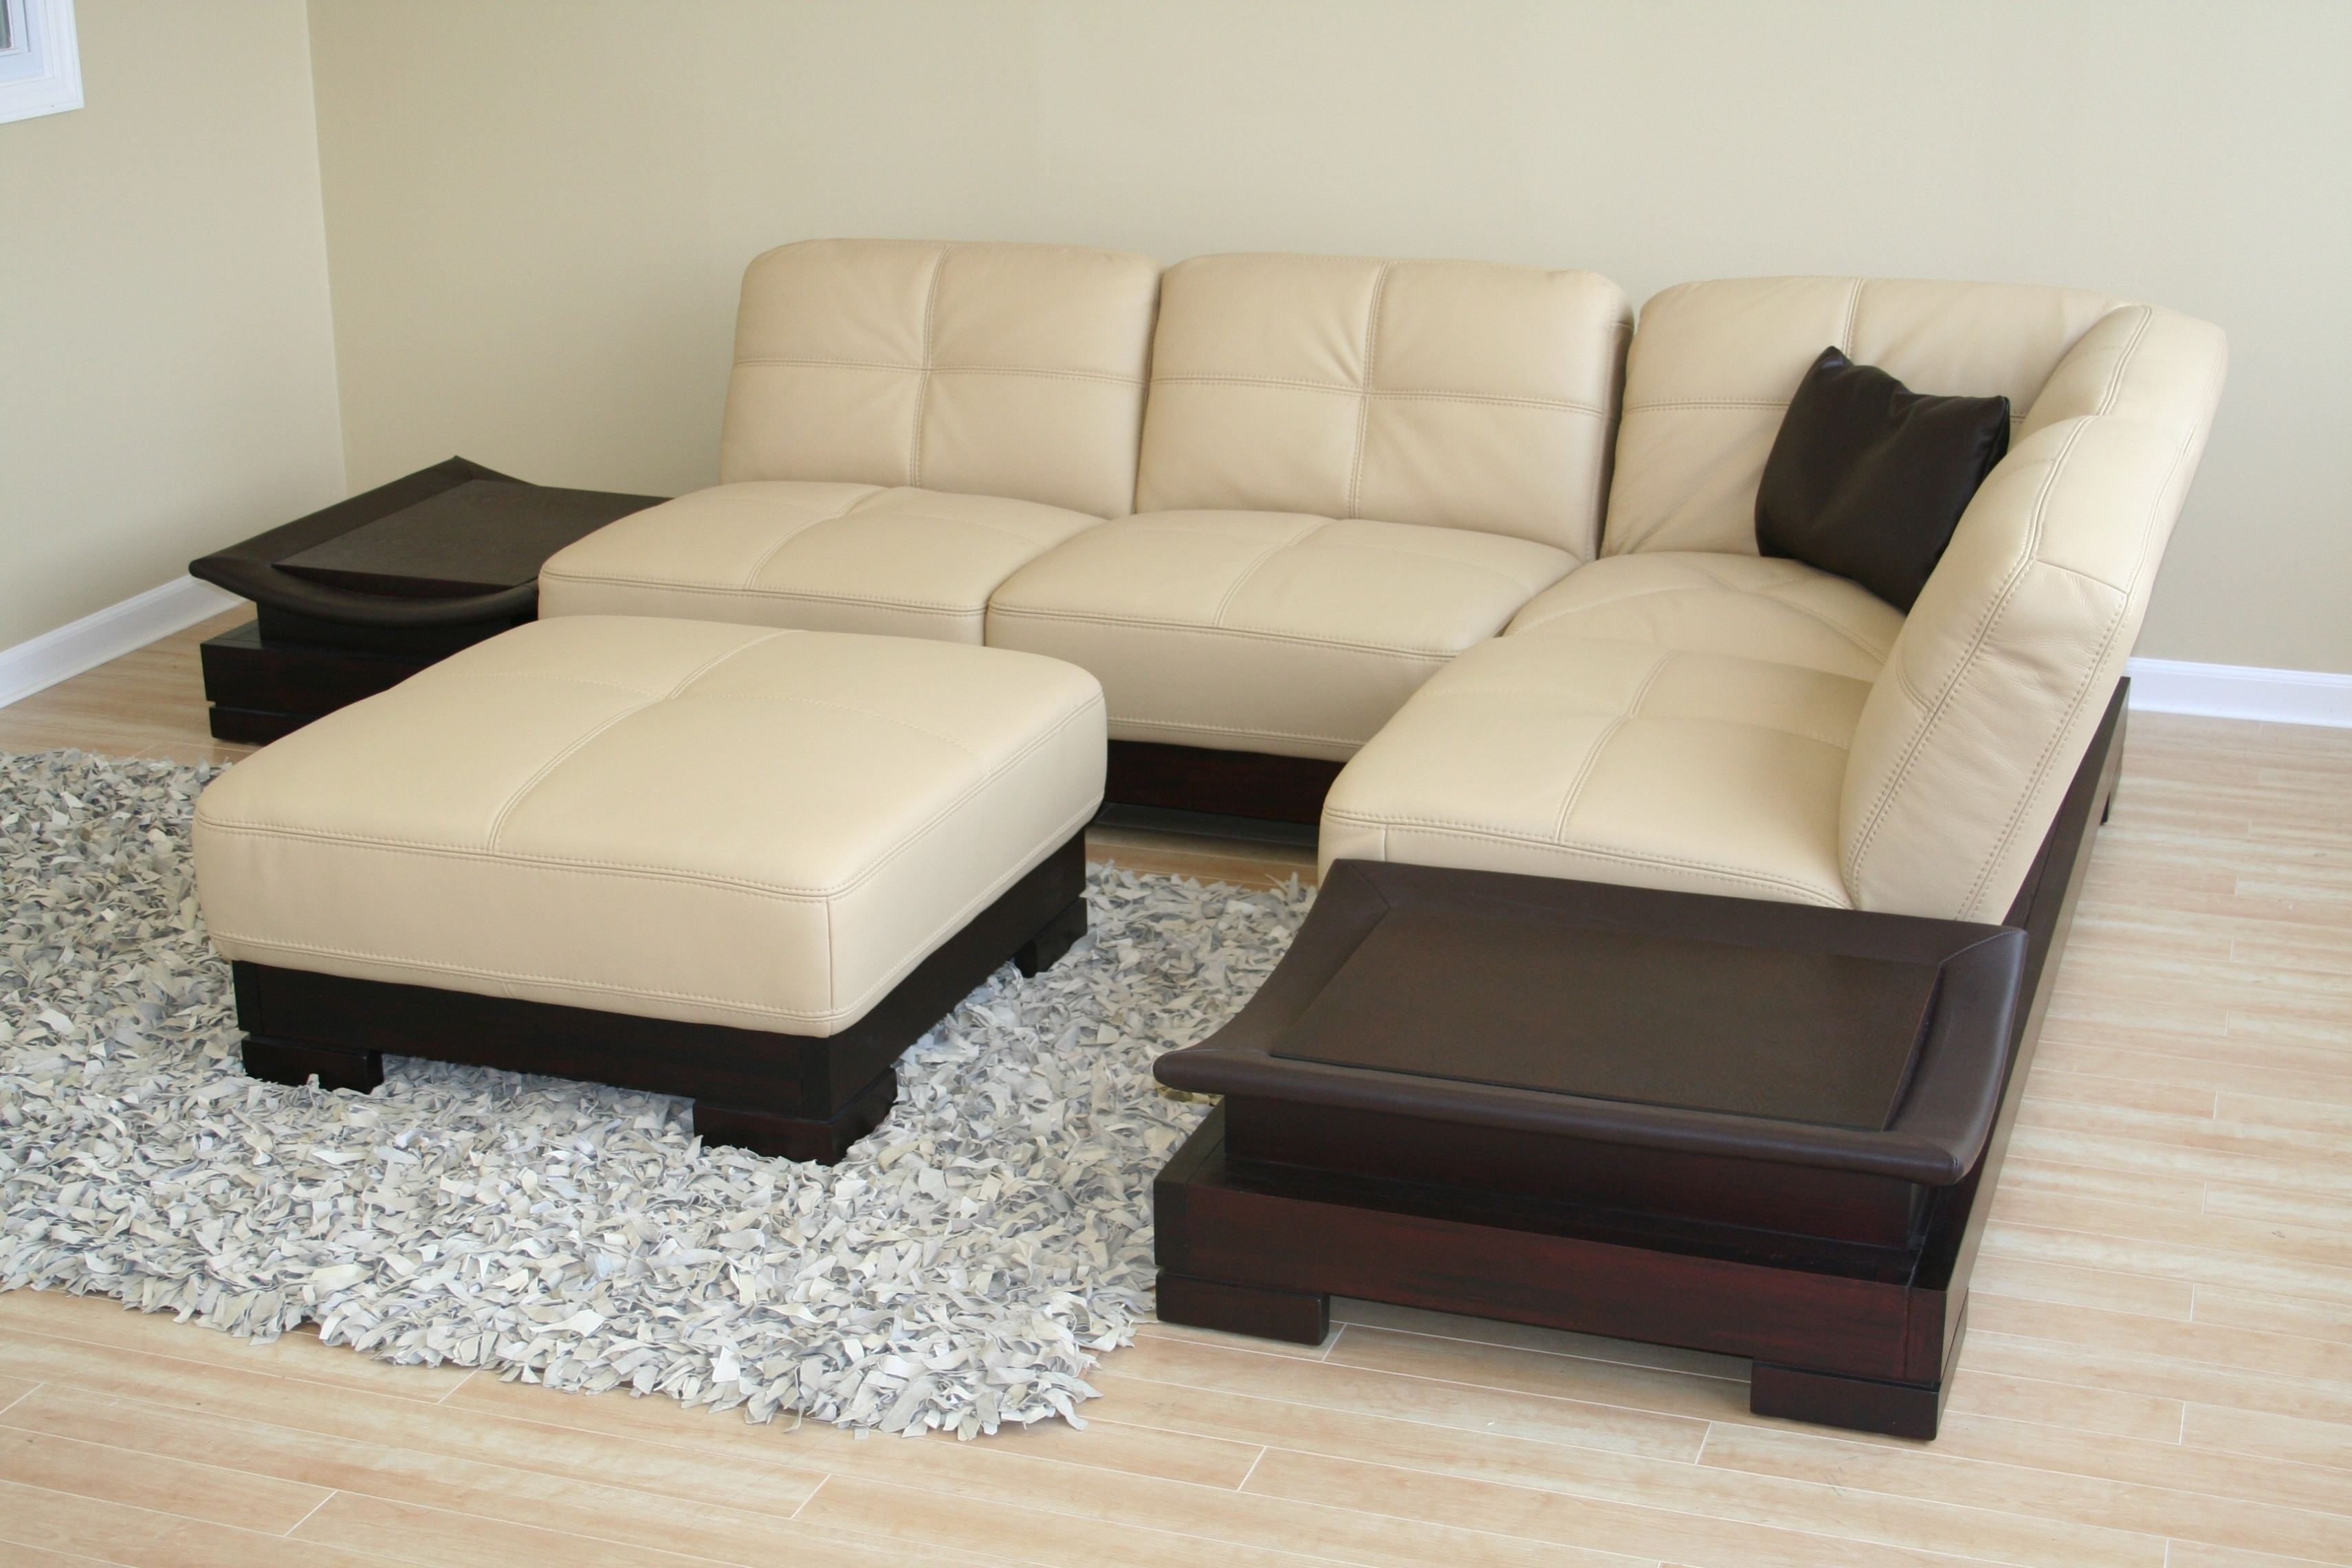 Small Modular Sofas For Most Recently Released Living Room : Modular Sofas For Small Spaces Small Sectional Sofas (View 15 of 20)